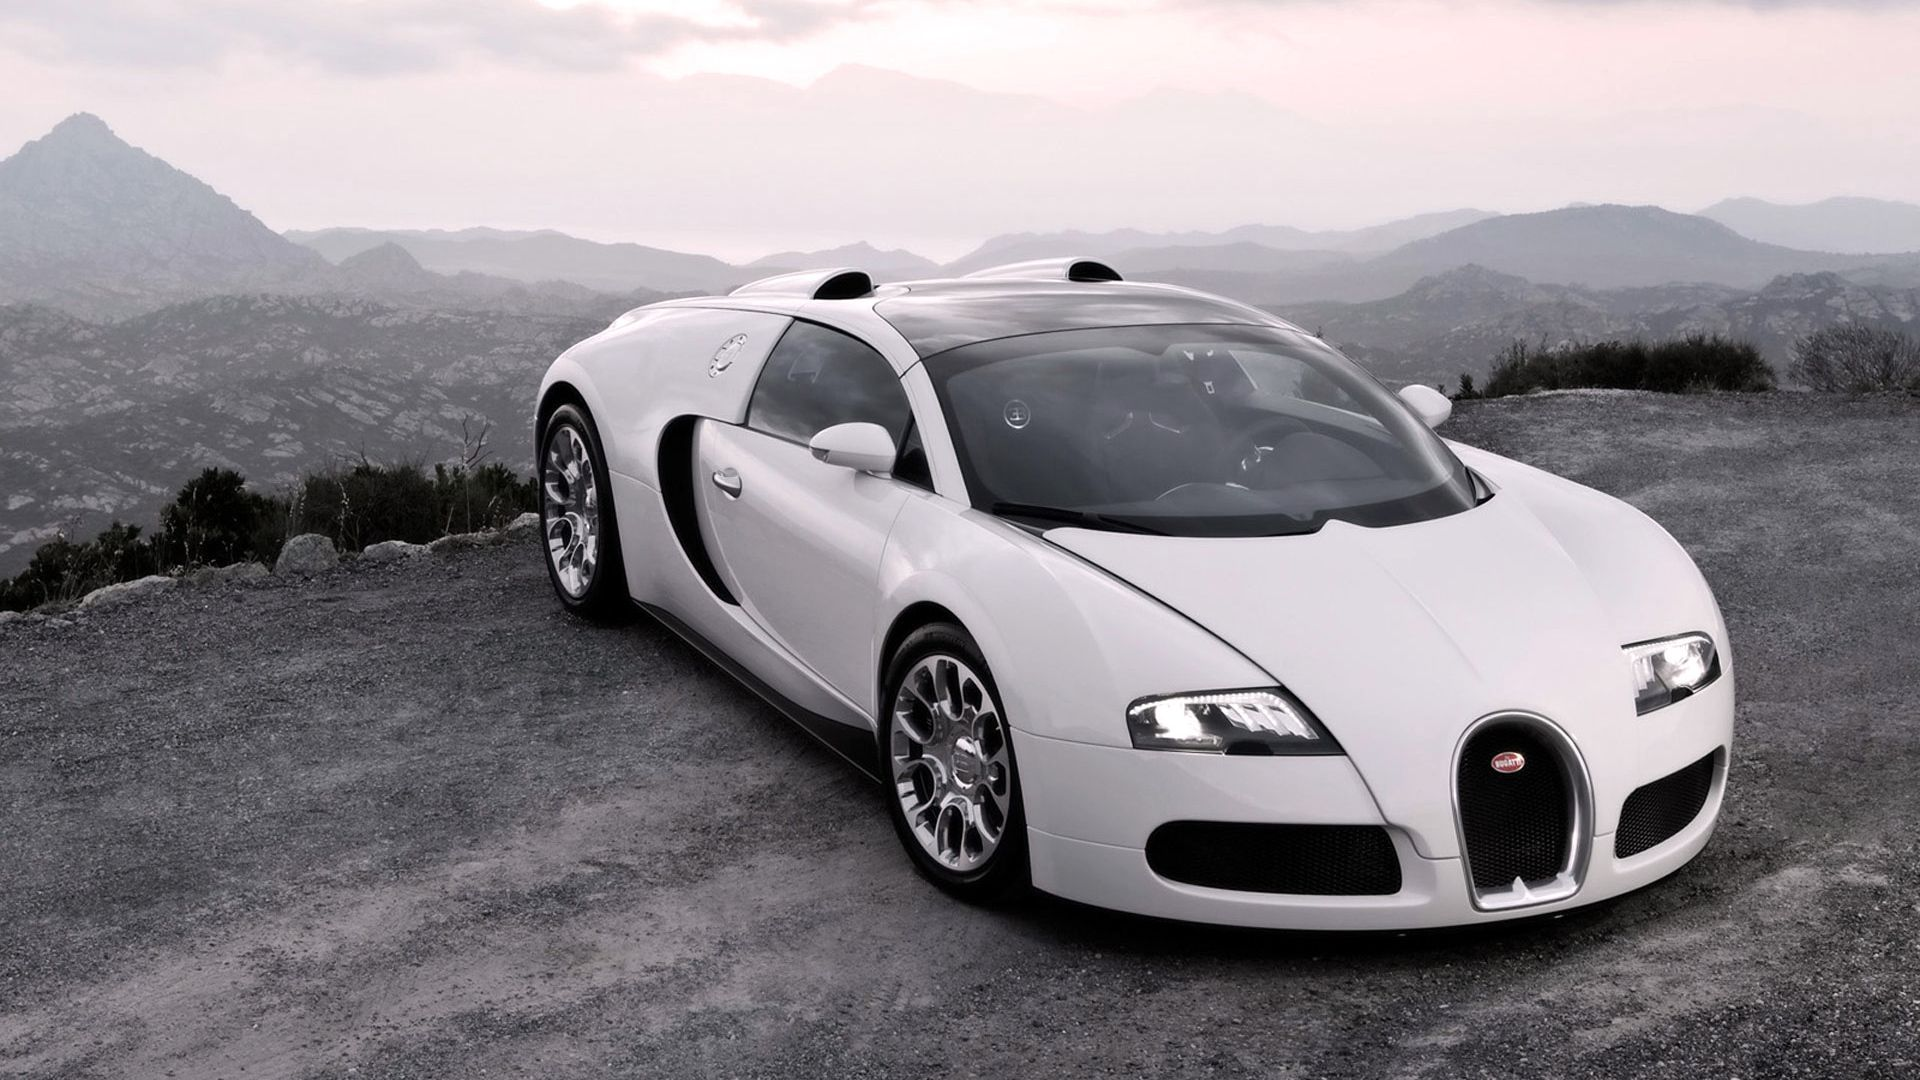 Image Result For Mac Wallpaper Price Of Bugatti Veyron